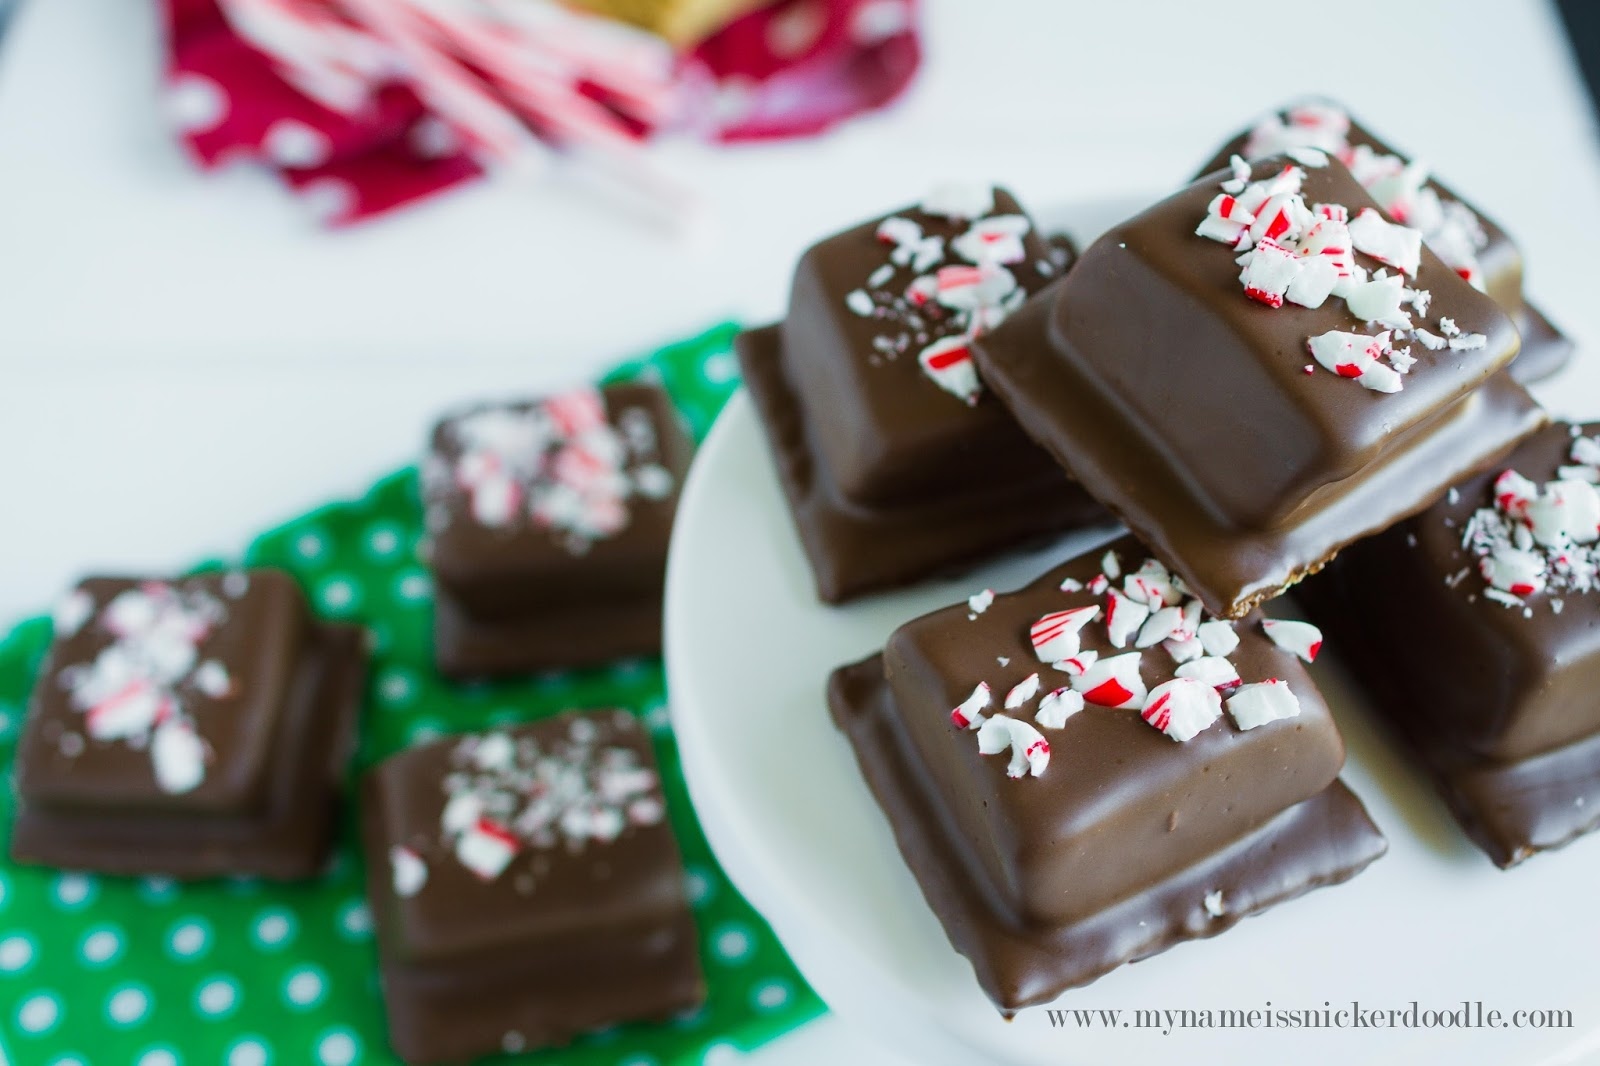 Christmas Peppermint S\'mores Video - My Name Is Snickerdoodle